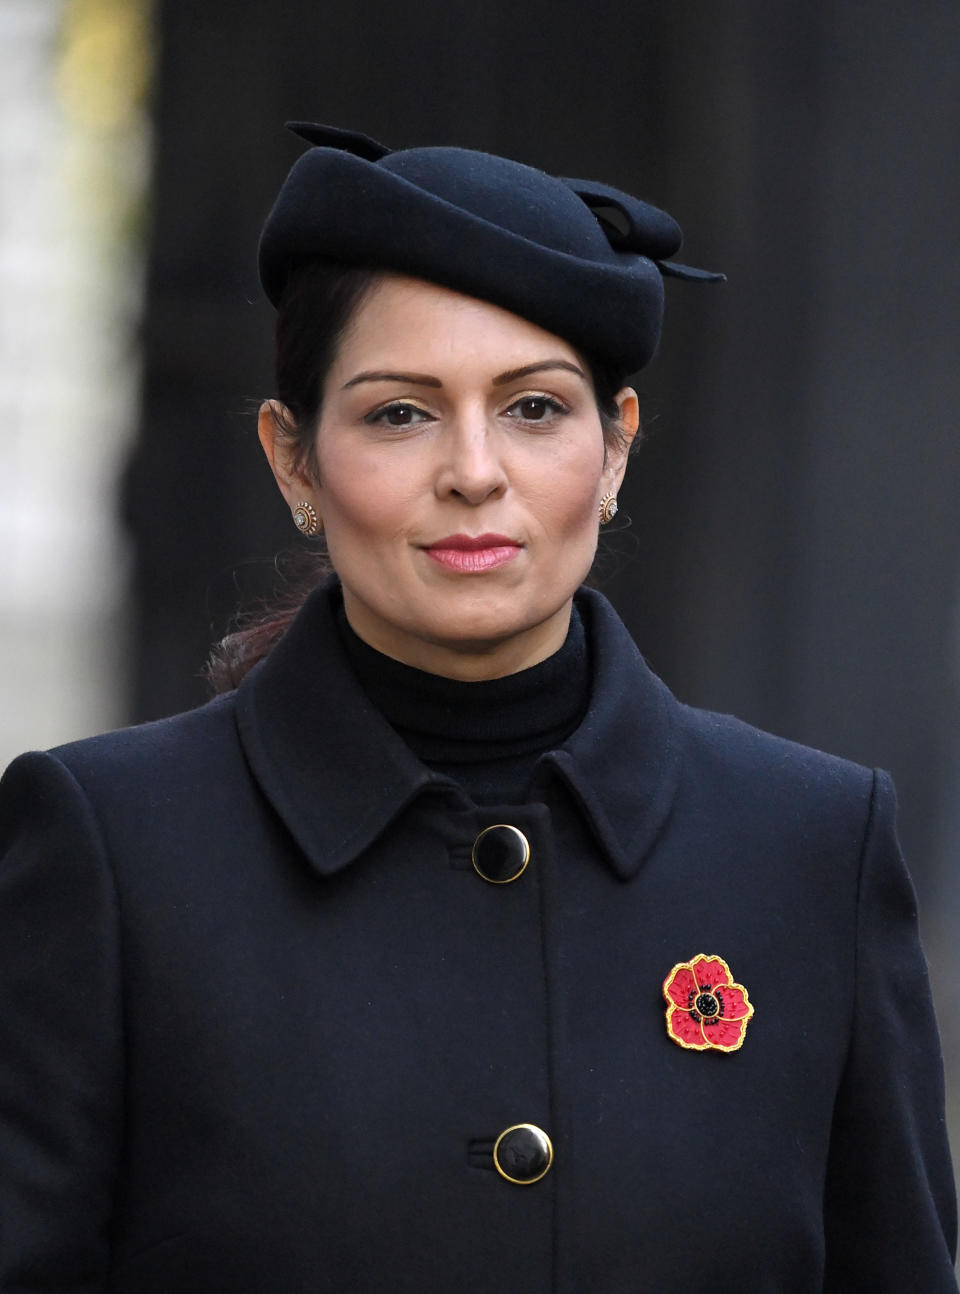 LONDON, ENGLAND - NOVEMBER 08: Priti Patel, Secretary of State for the Home Department attends the National Service of Remembrance at The Cenotaph on November 08, 2020 in London, England. (Photo by Karwai Tang/WireImage)